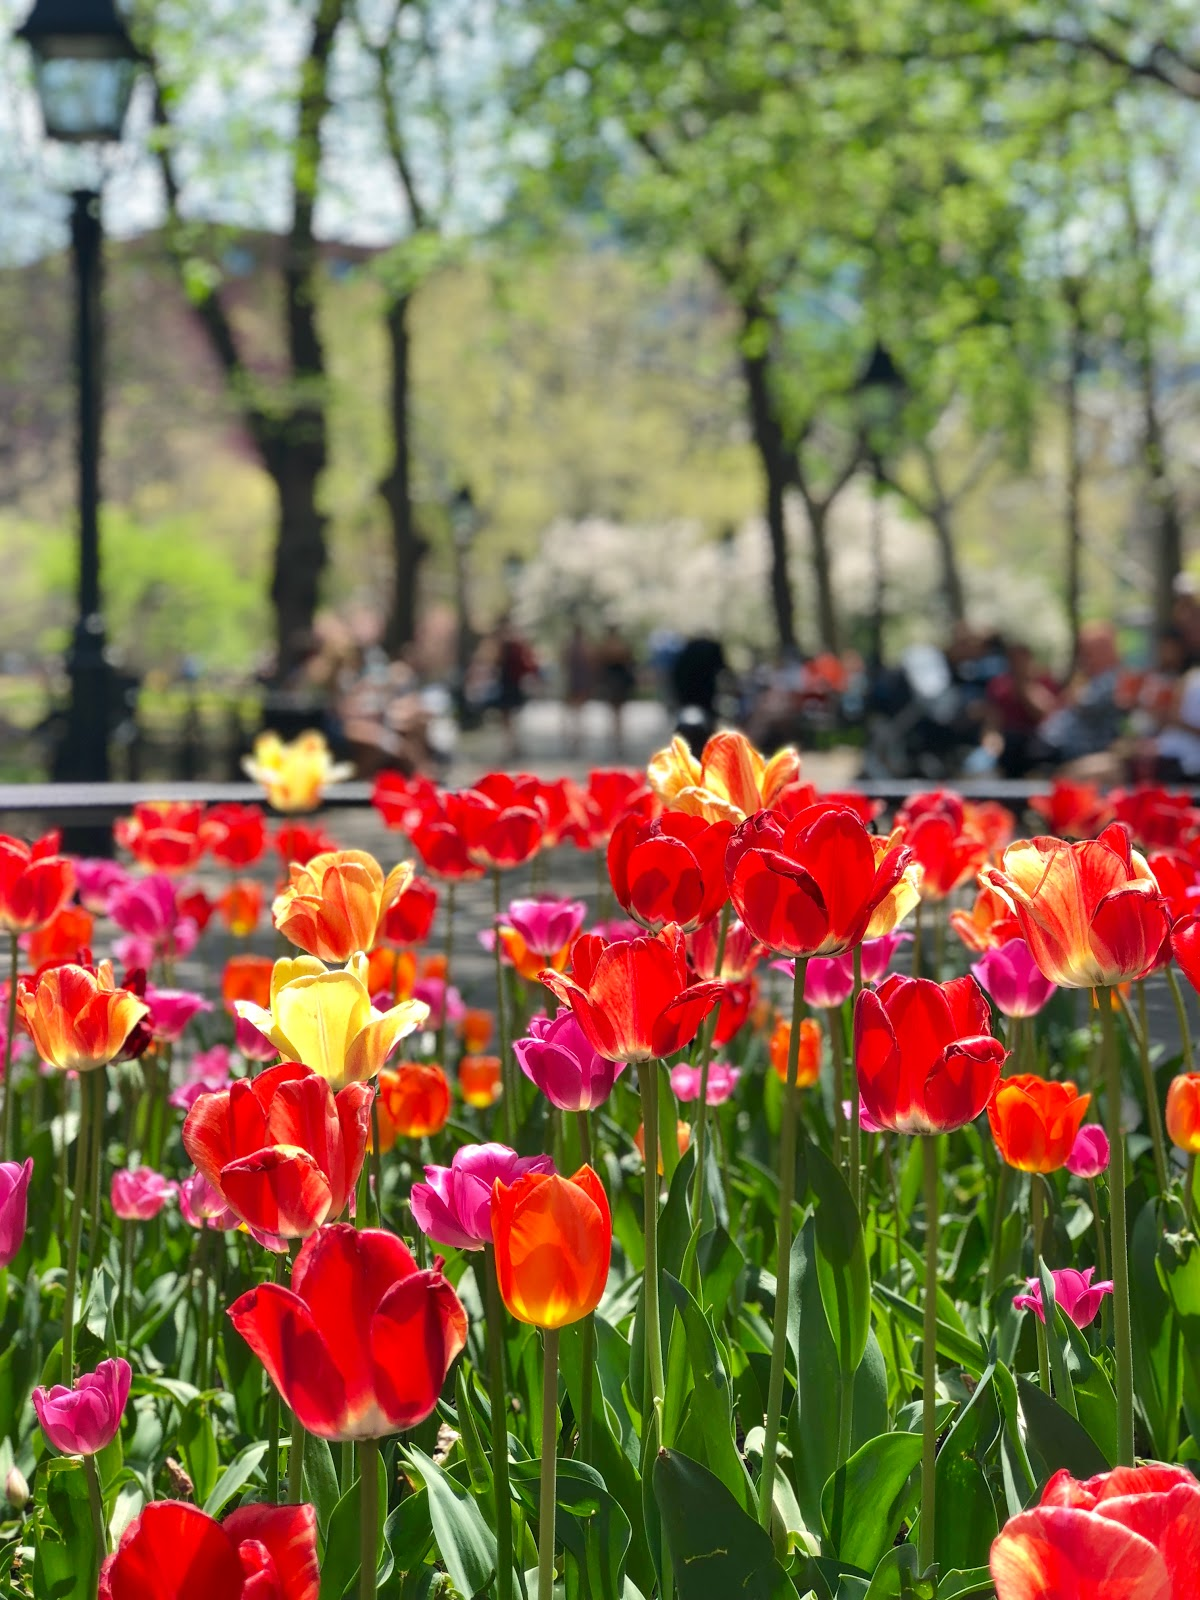 Washington Square Park, Spring 2018, New York City, Photos by Jessica Marie Kelley